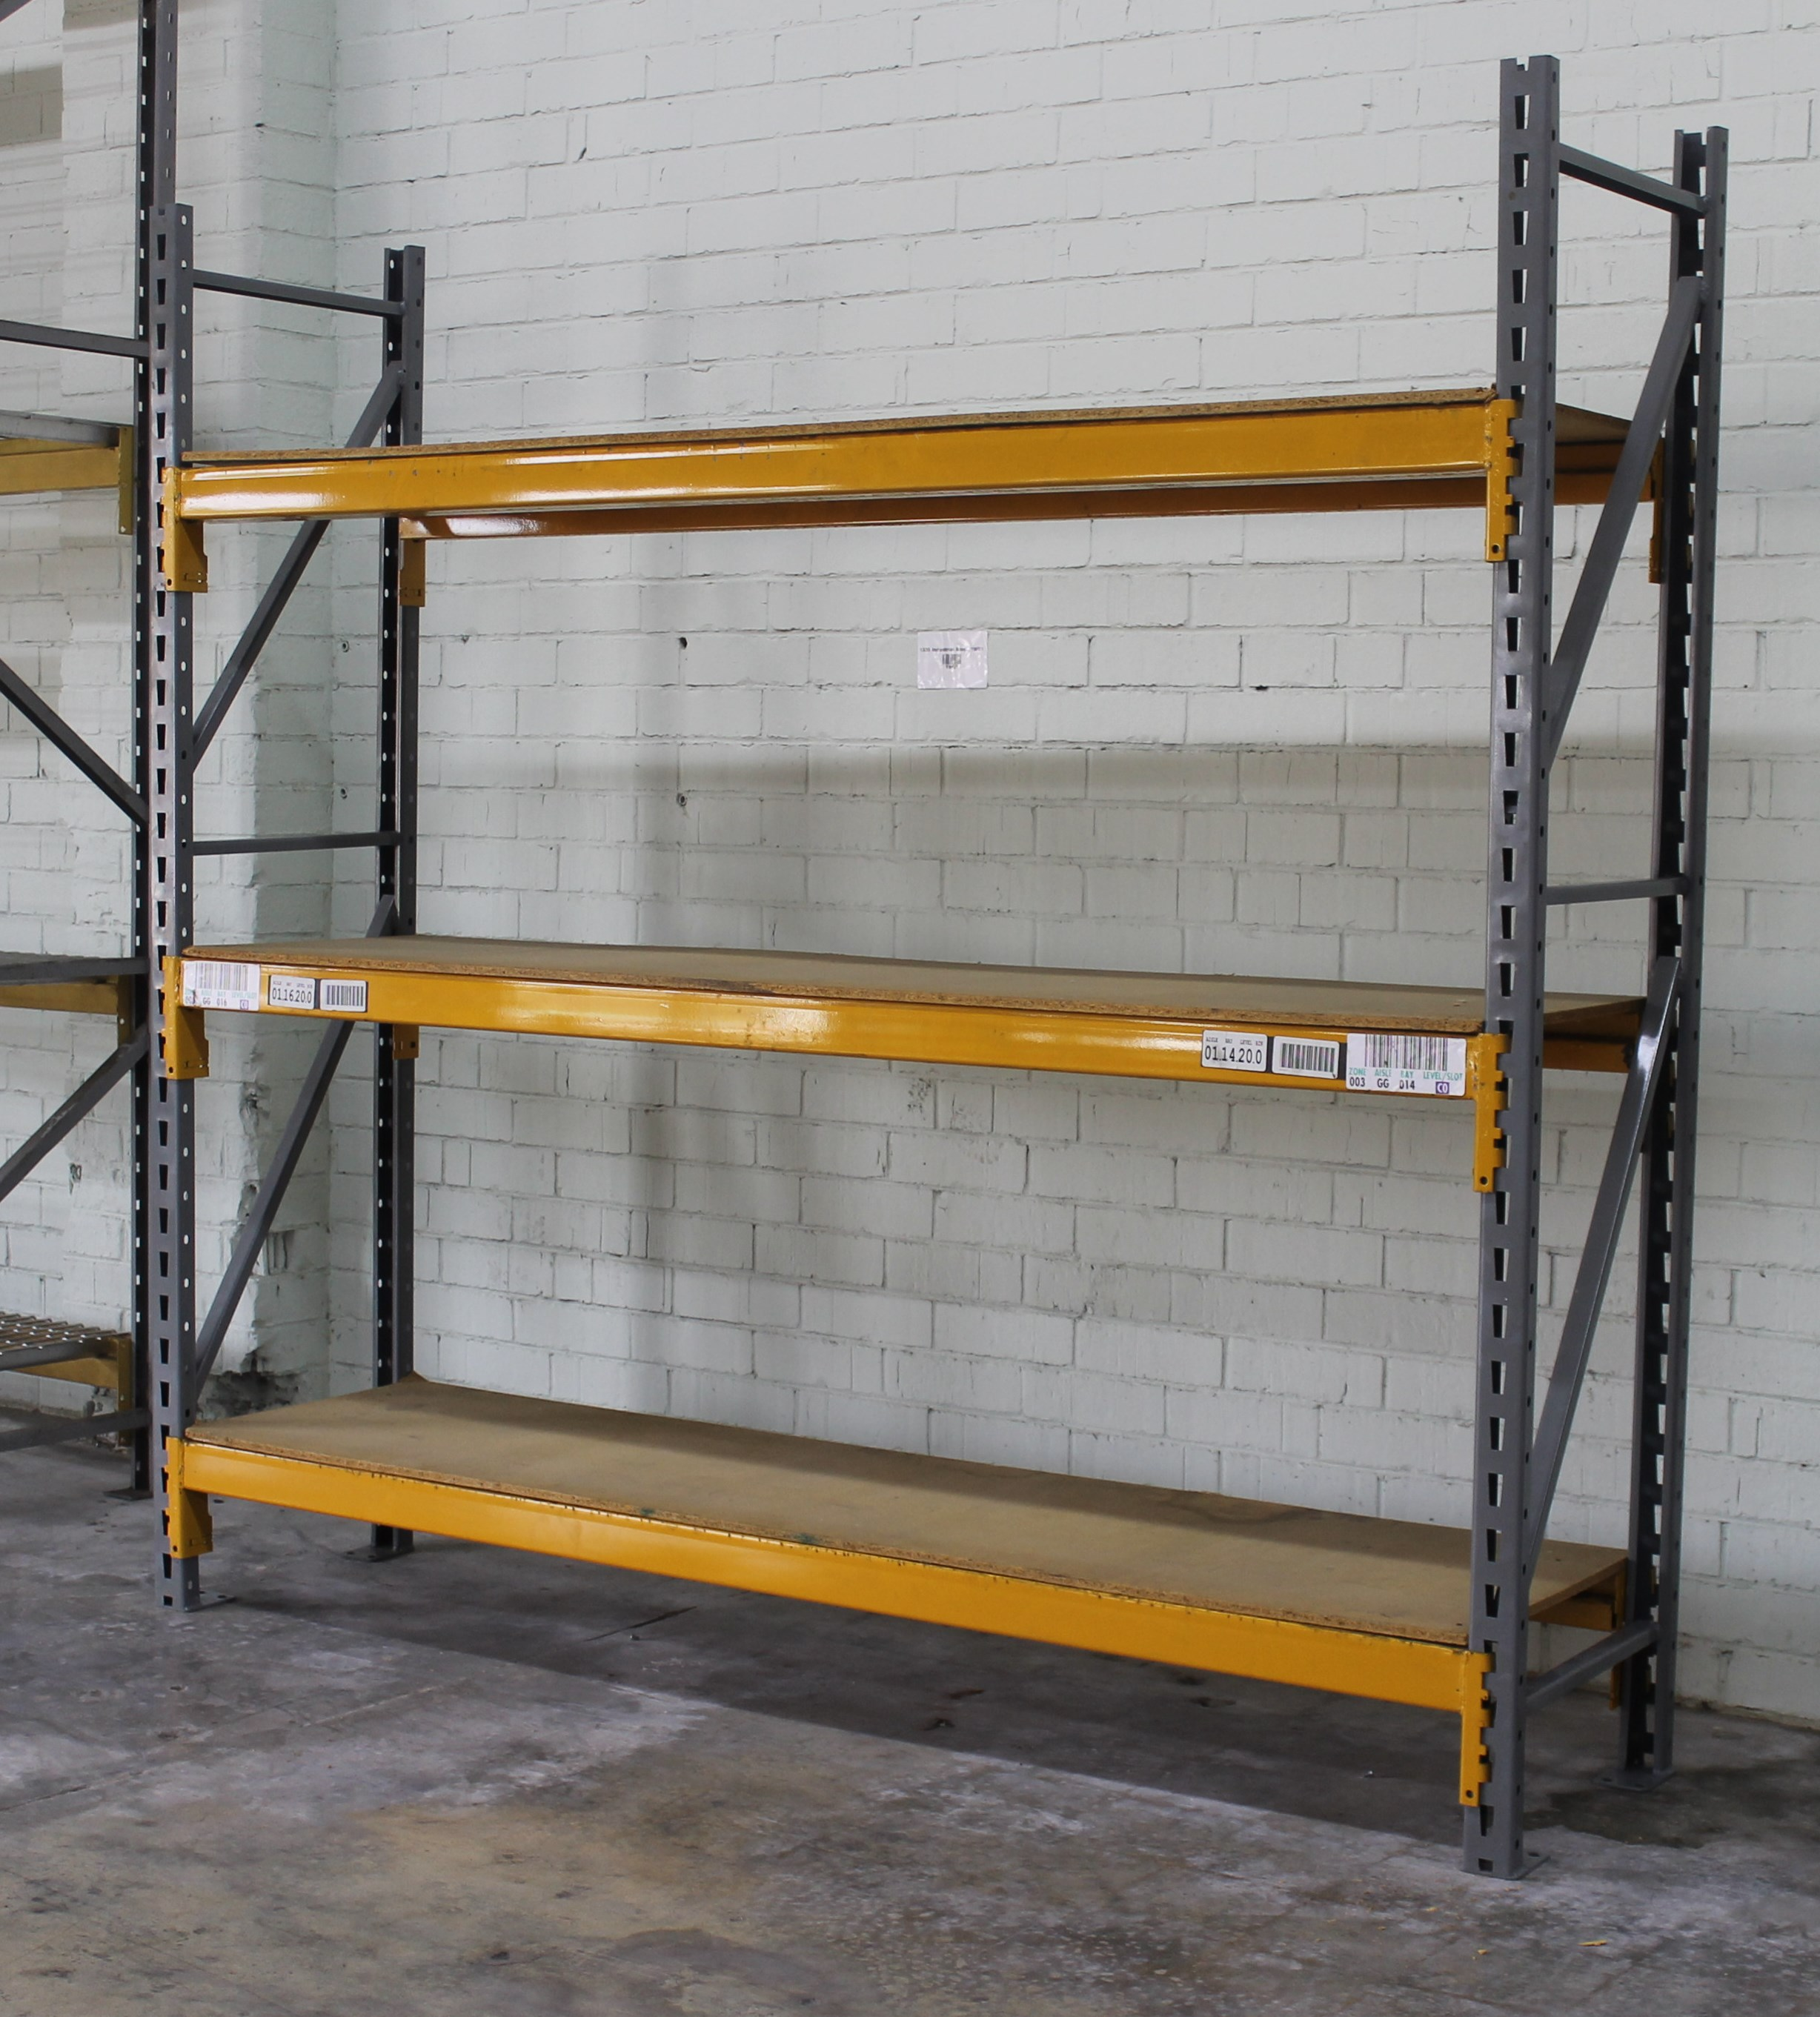 "Lot 39 - NEW 10 SECTIONS OF 96""H X 24""D X 96""L STOCK ROOM PALLET RACK SHELVING"